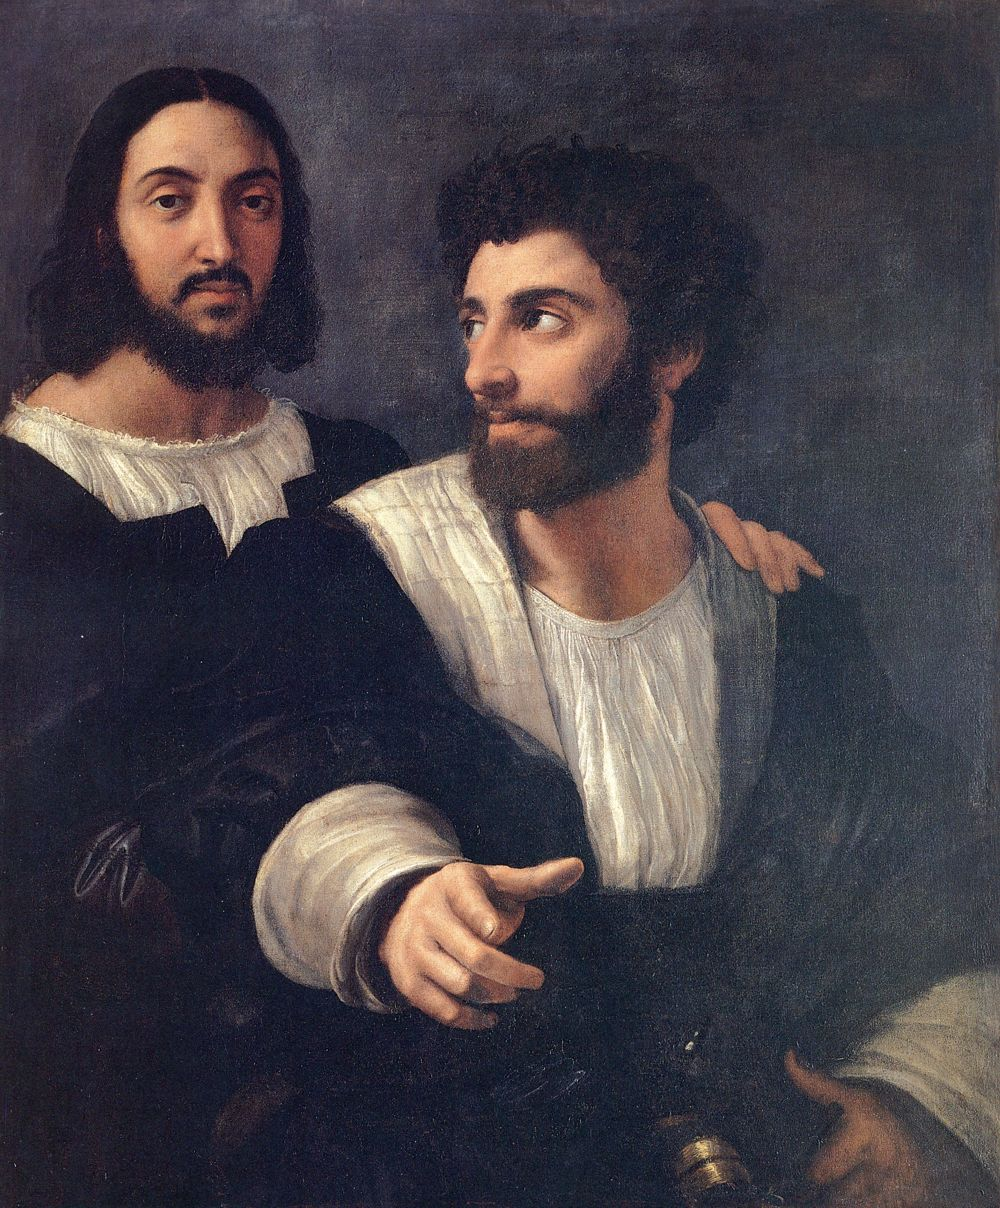 Francesco da Melzo and his friend Raphael